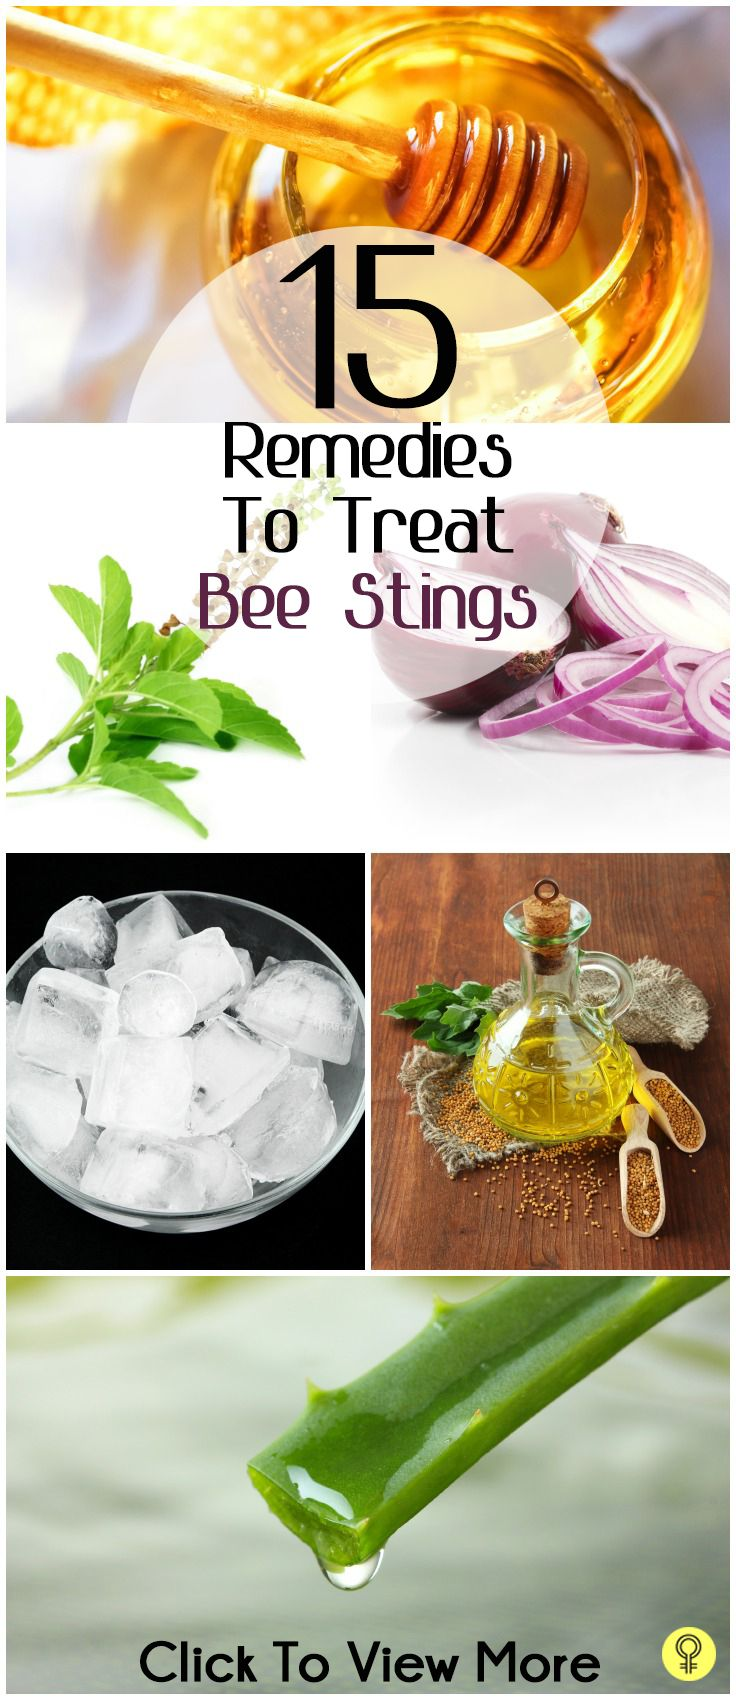 7 simple home remedies to get rid of bug bites and stings